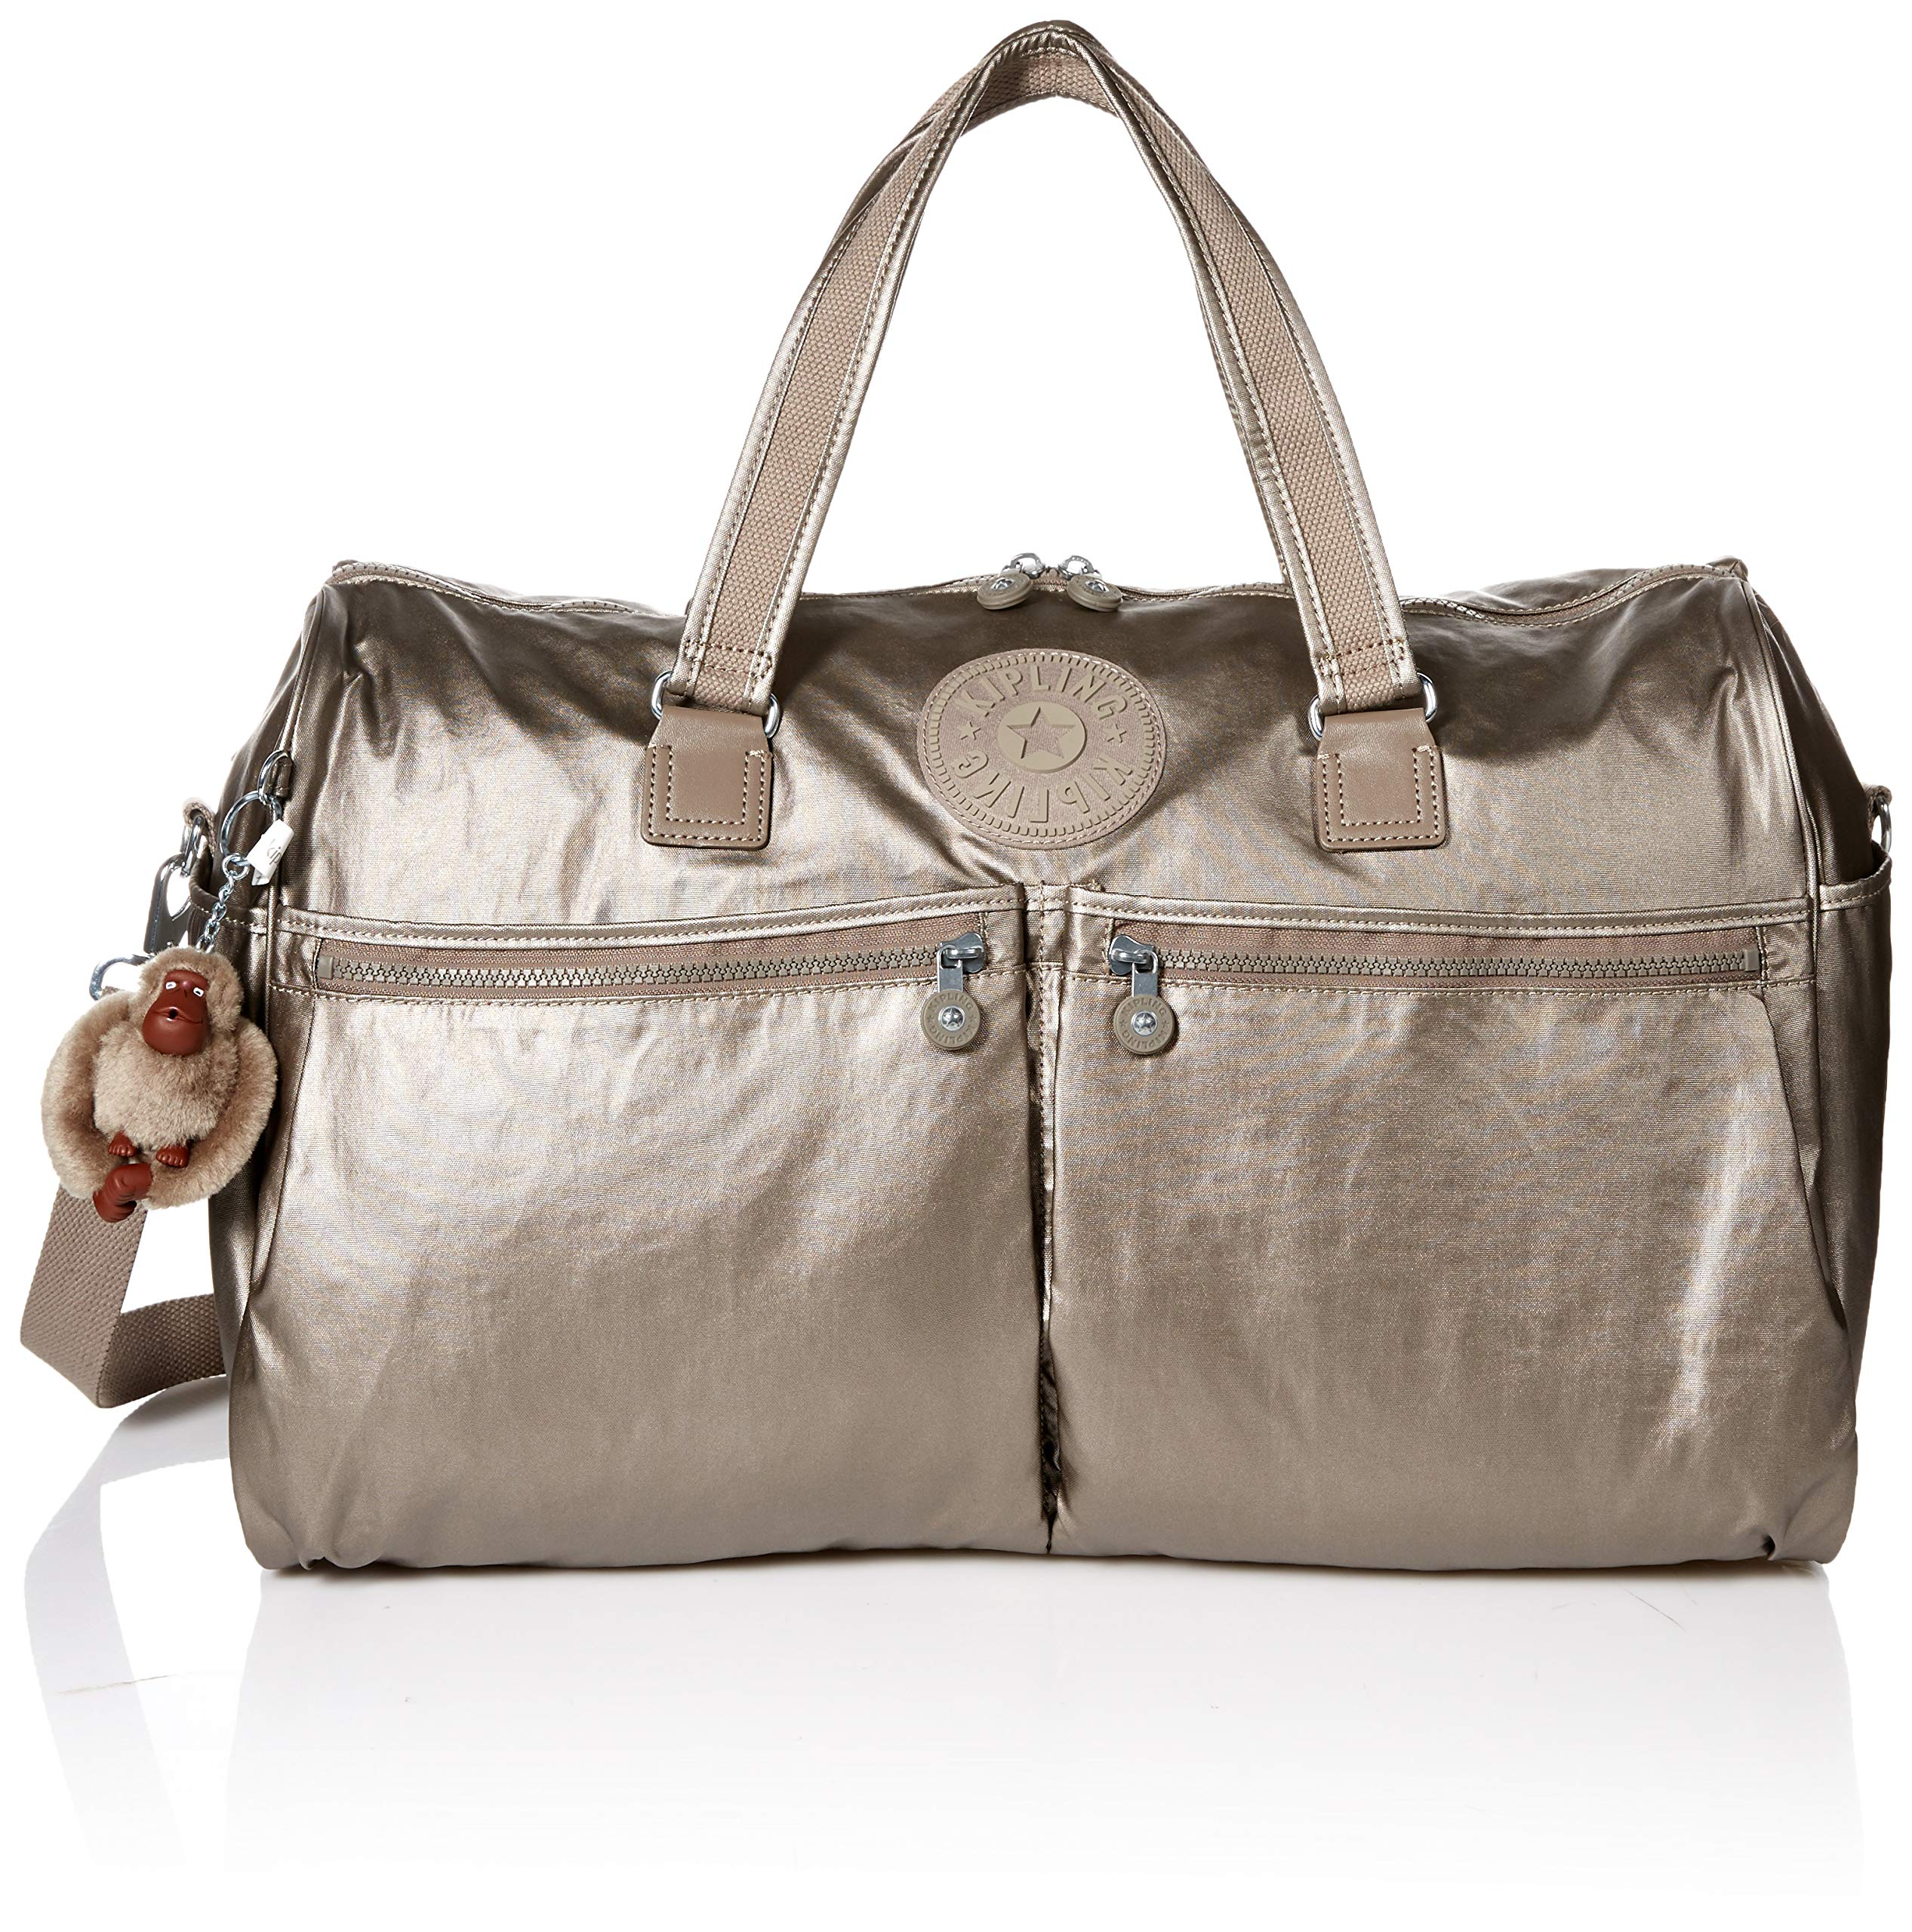 Kipling Itska Duffle, Essential Travel Bag, Multi Pocket, Zip Closure, metallic pewter